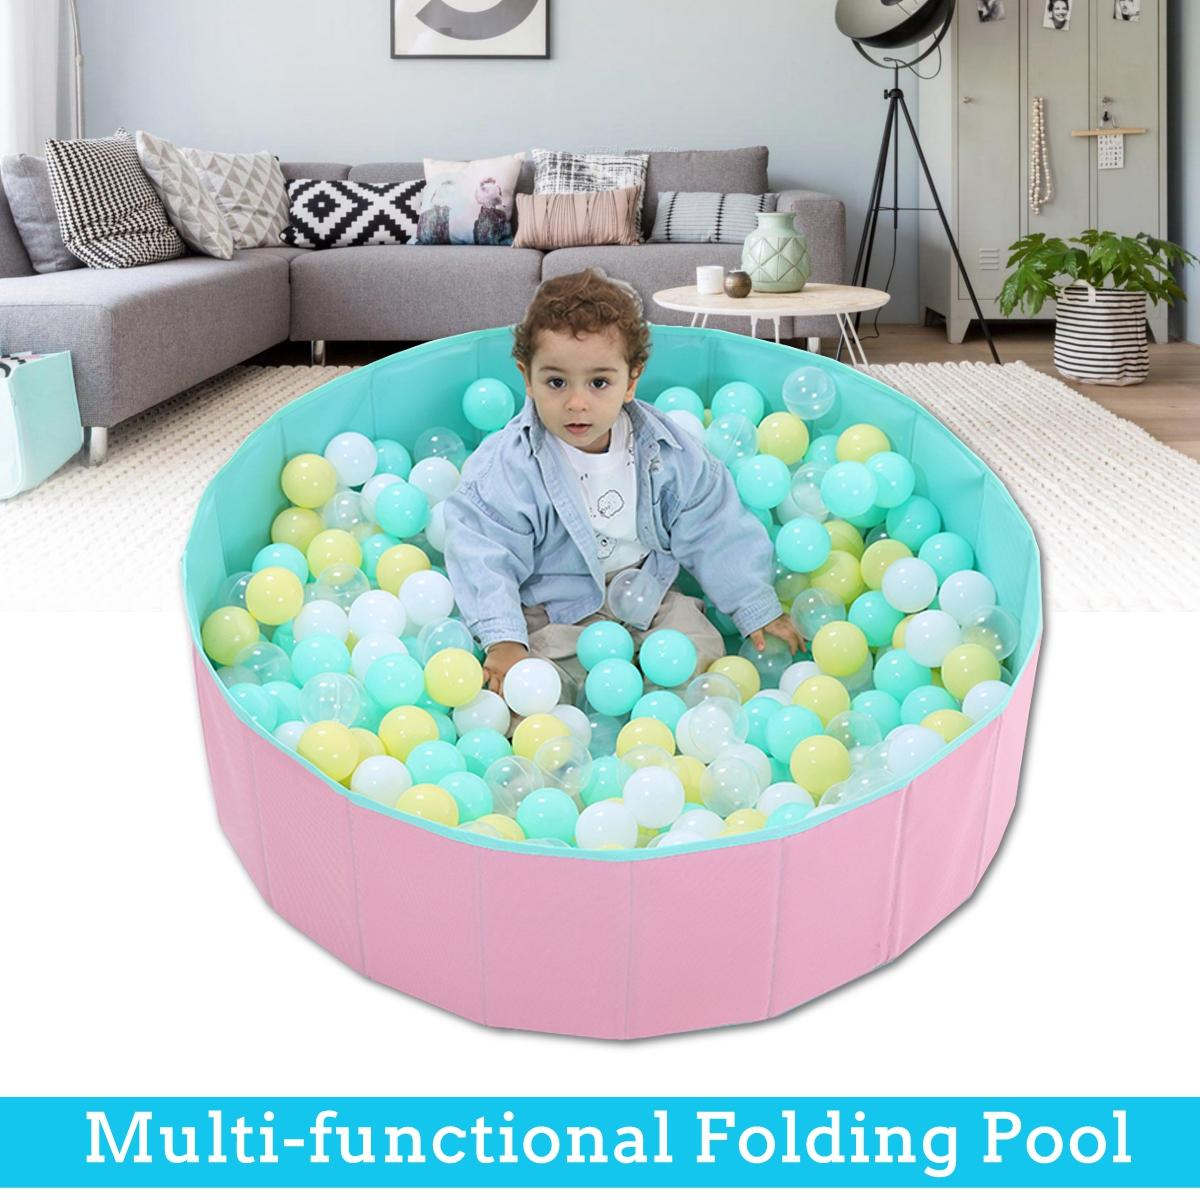 Foldable Baby Playpen S 80x26cm Folding Children Kids Outdoor & Indoor Playing Ocean Ball Pool Child Baby Fence